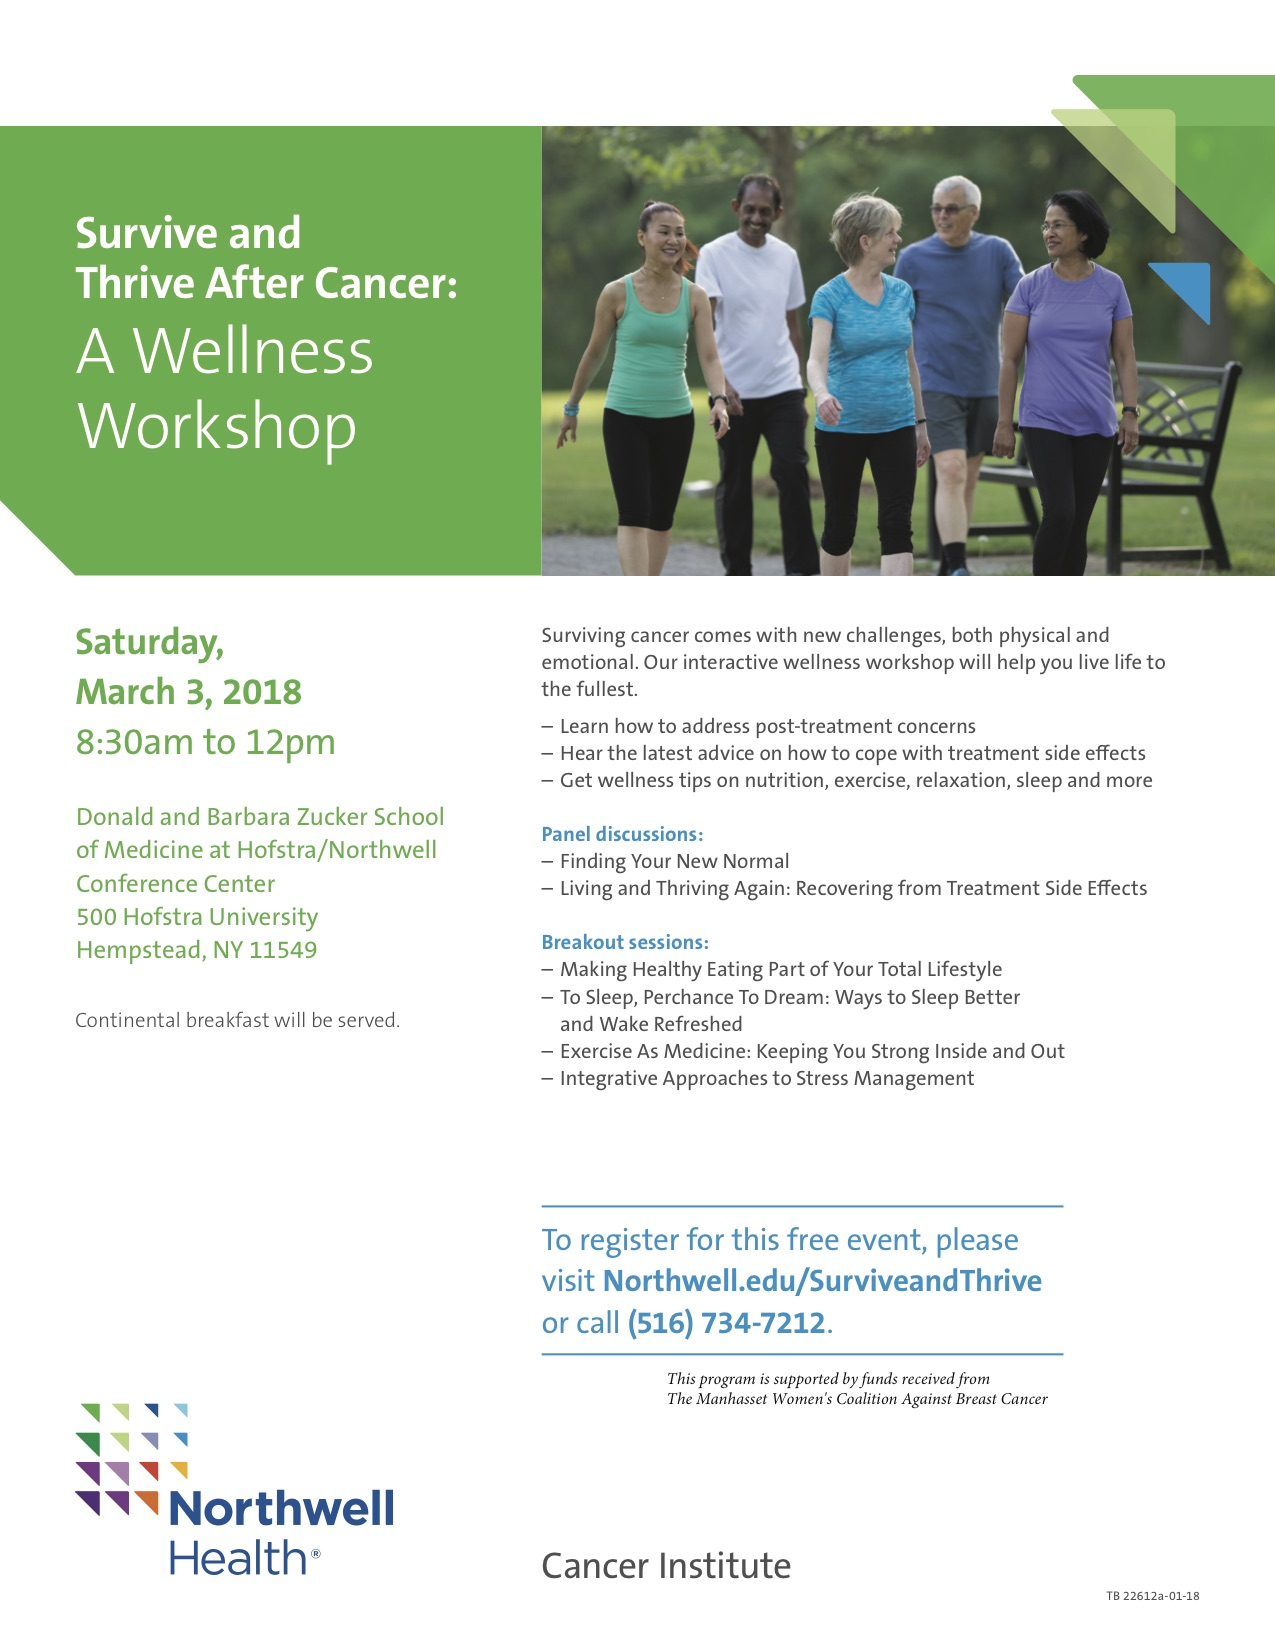 Survive and Thrive After Cancer: A Wellness Workshop